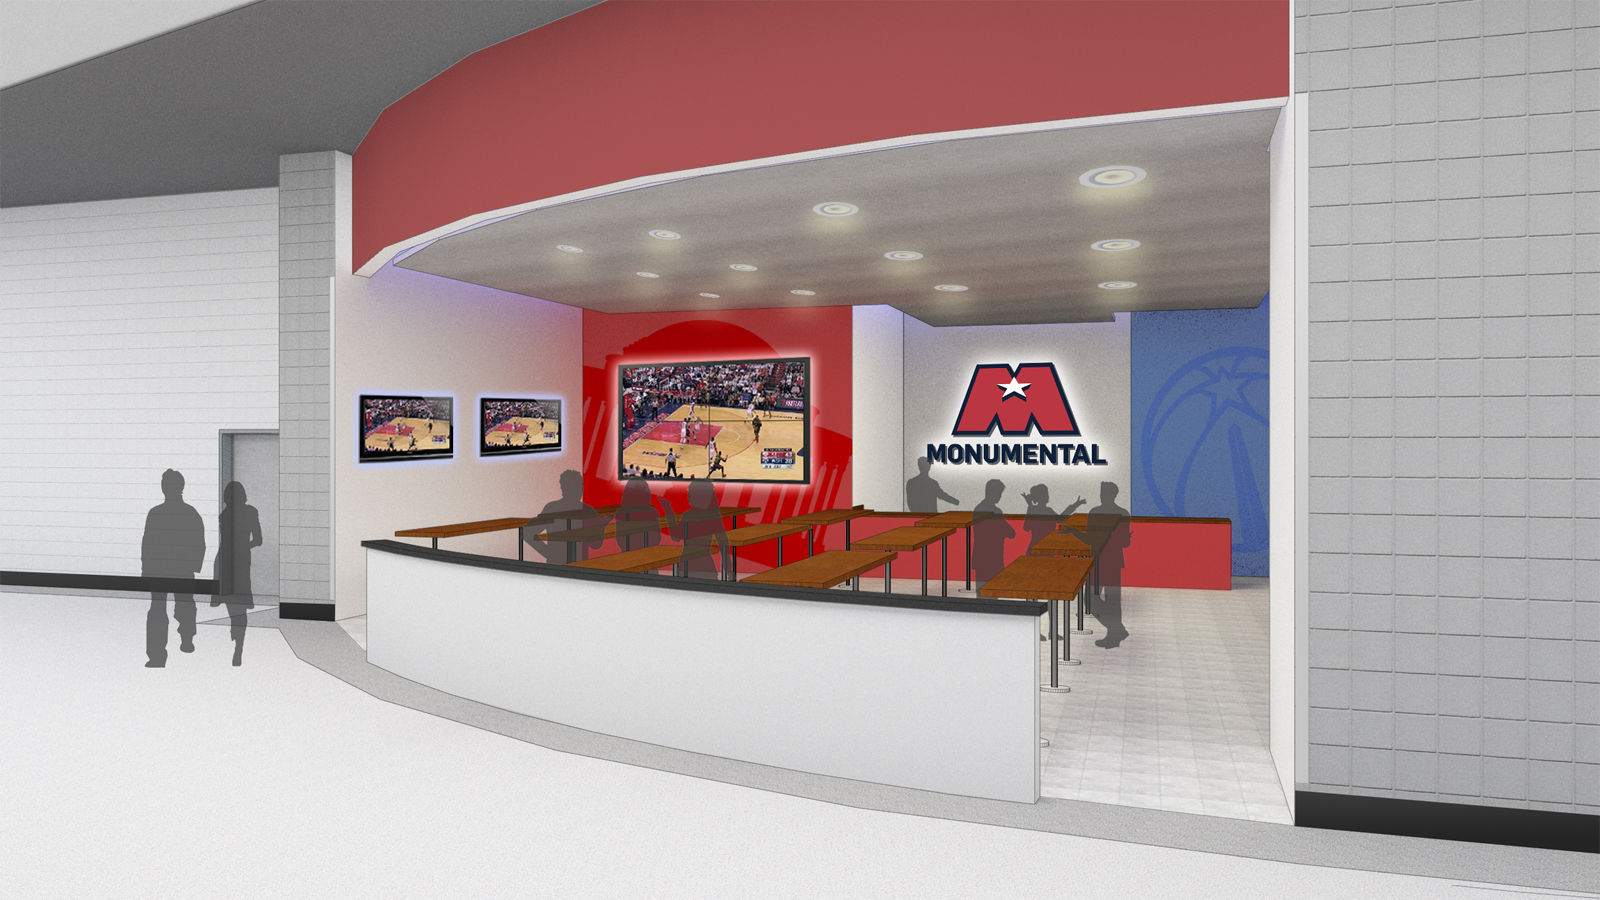 """The concourses on the 100 and 400 levels will get a complete makeover, including new flooring, new lighting, and what Monumental calls a """"sleek new decor."""" (Courtesy Gensler Sports)"""